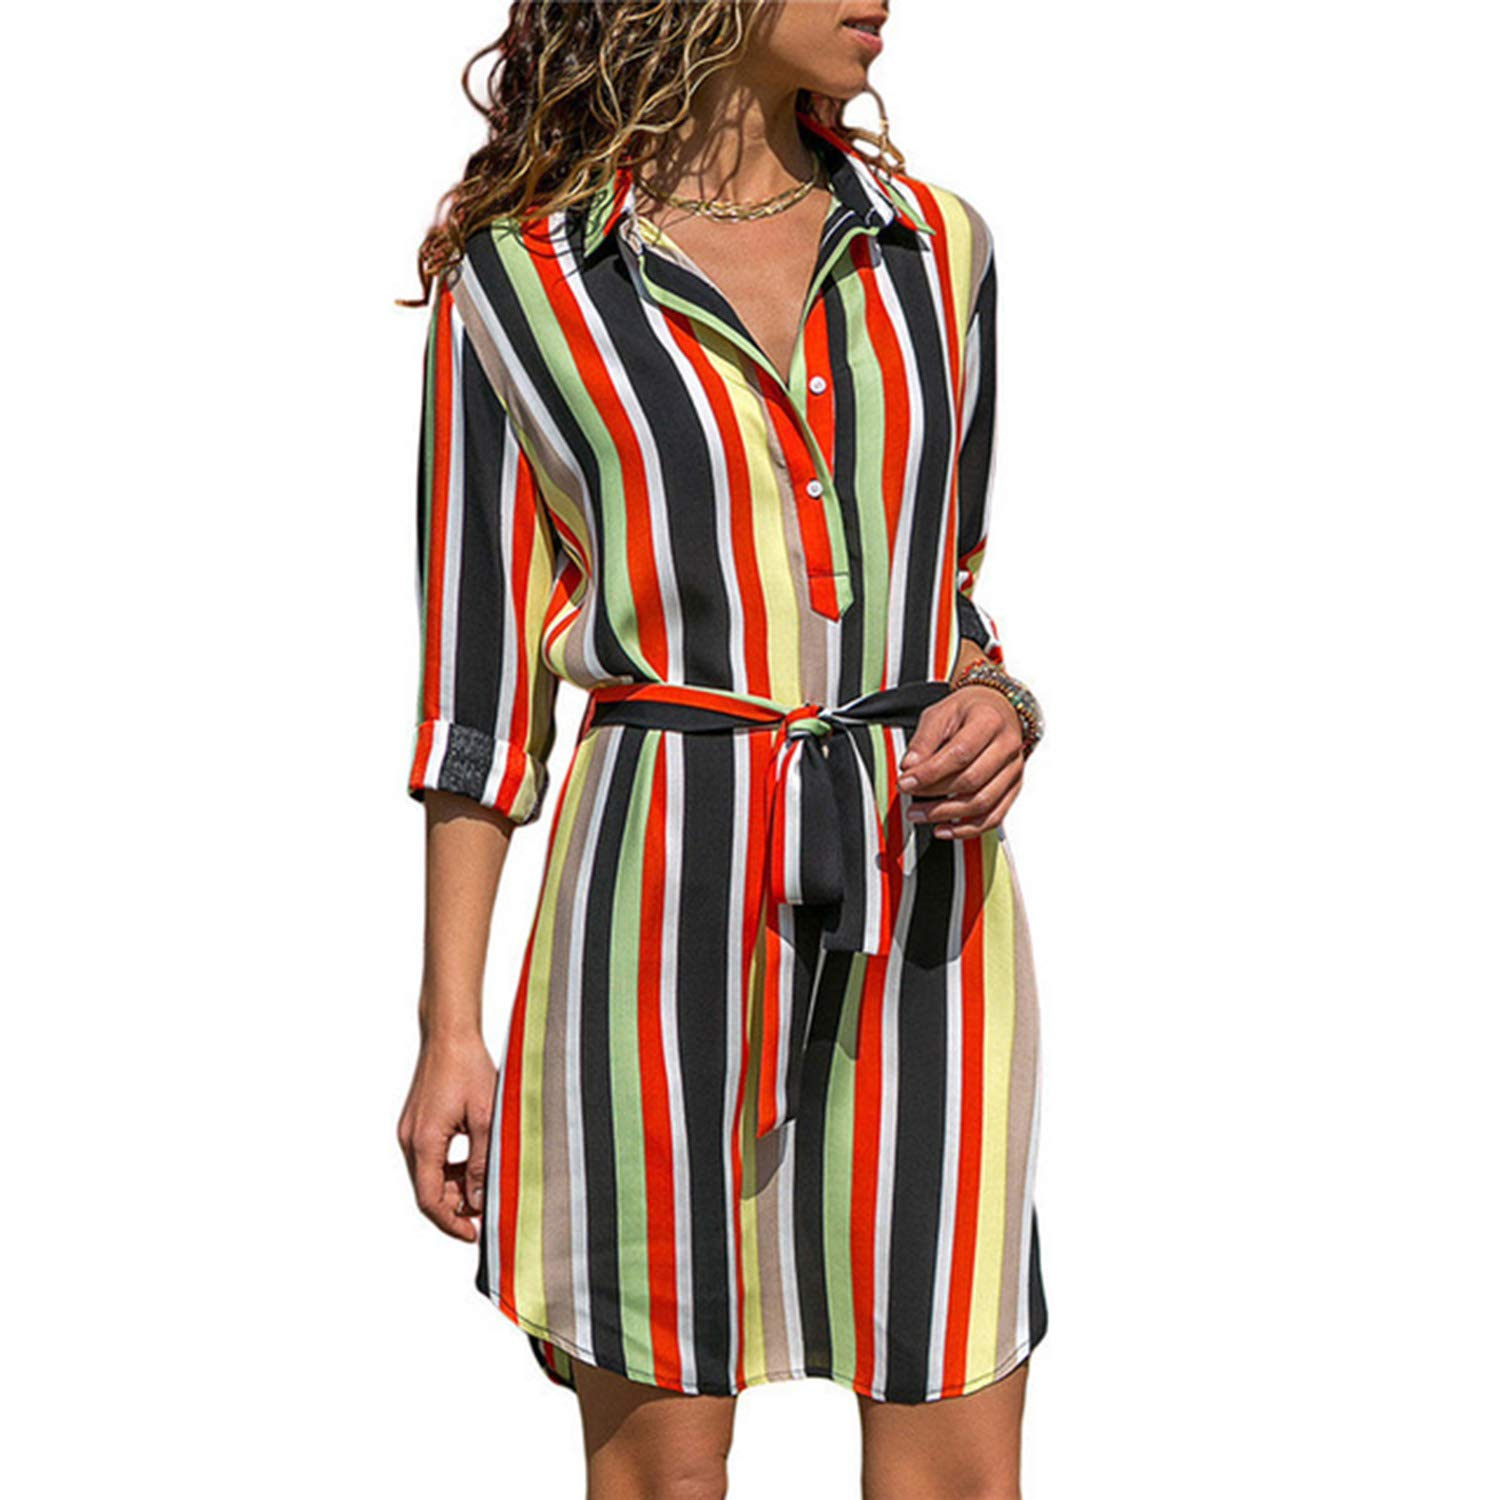 Clearance Long Sleeve Shirt Dress 2019 Summer Chiffon Boho Beach Dresses Women Casual Striped Print A-line Mini Party Dress Vestidos